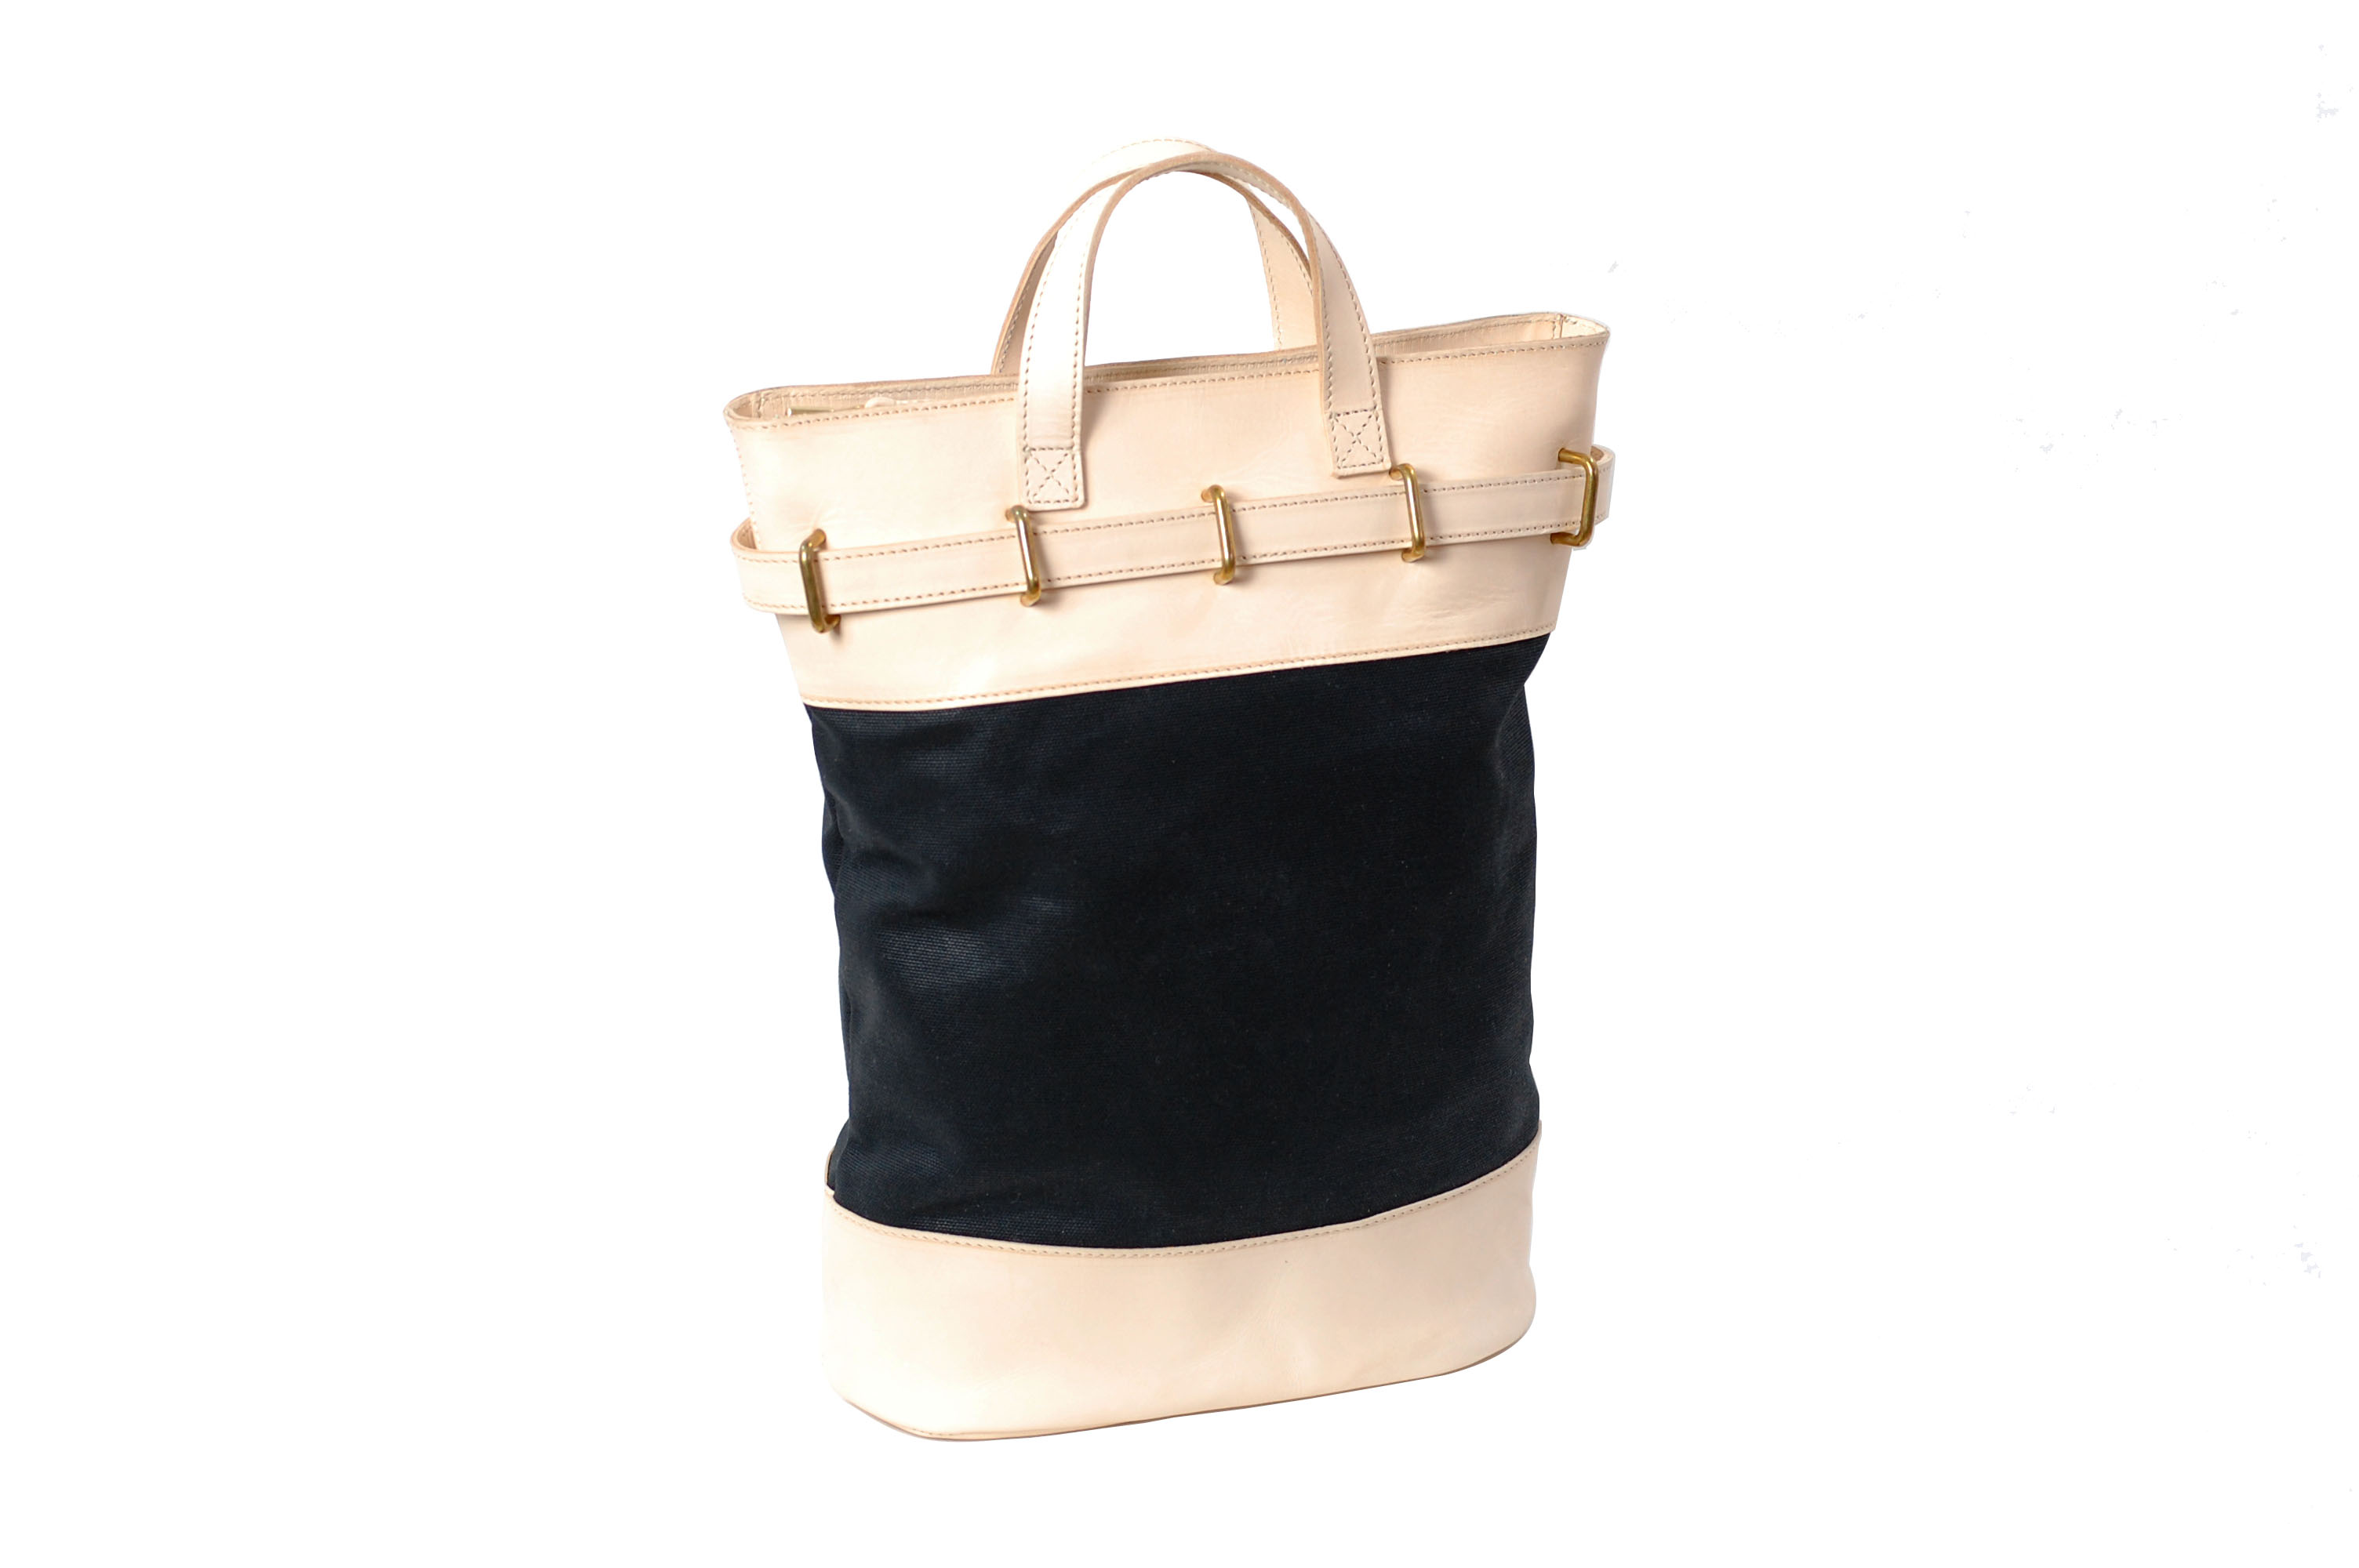 mahiout bag, mail bag in waxed cotton, natural tanned leahter and solid brass fittings, http.//www.contractor48.com, http://www.mahiout.com